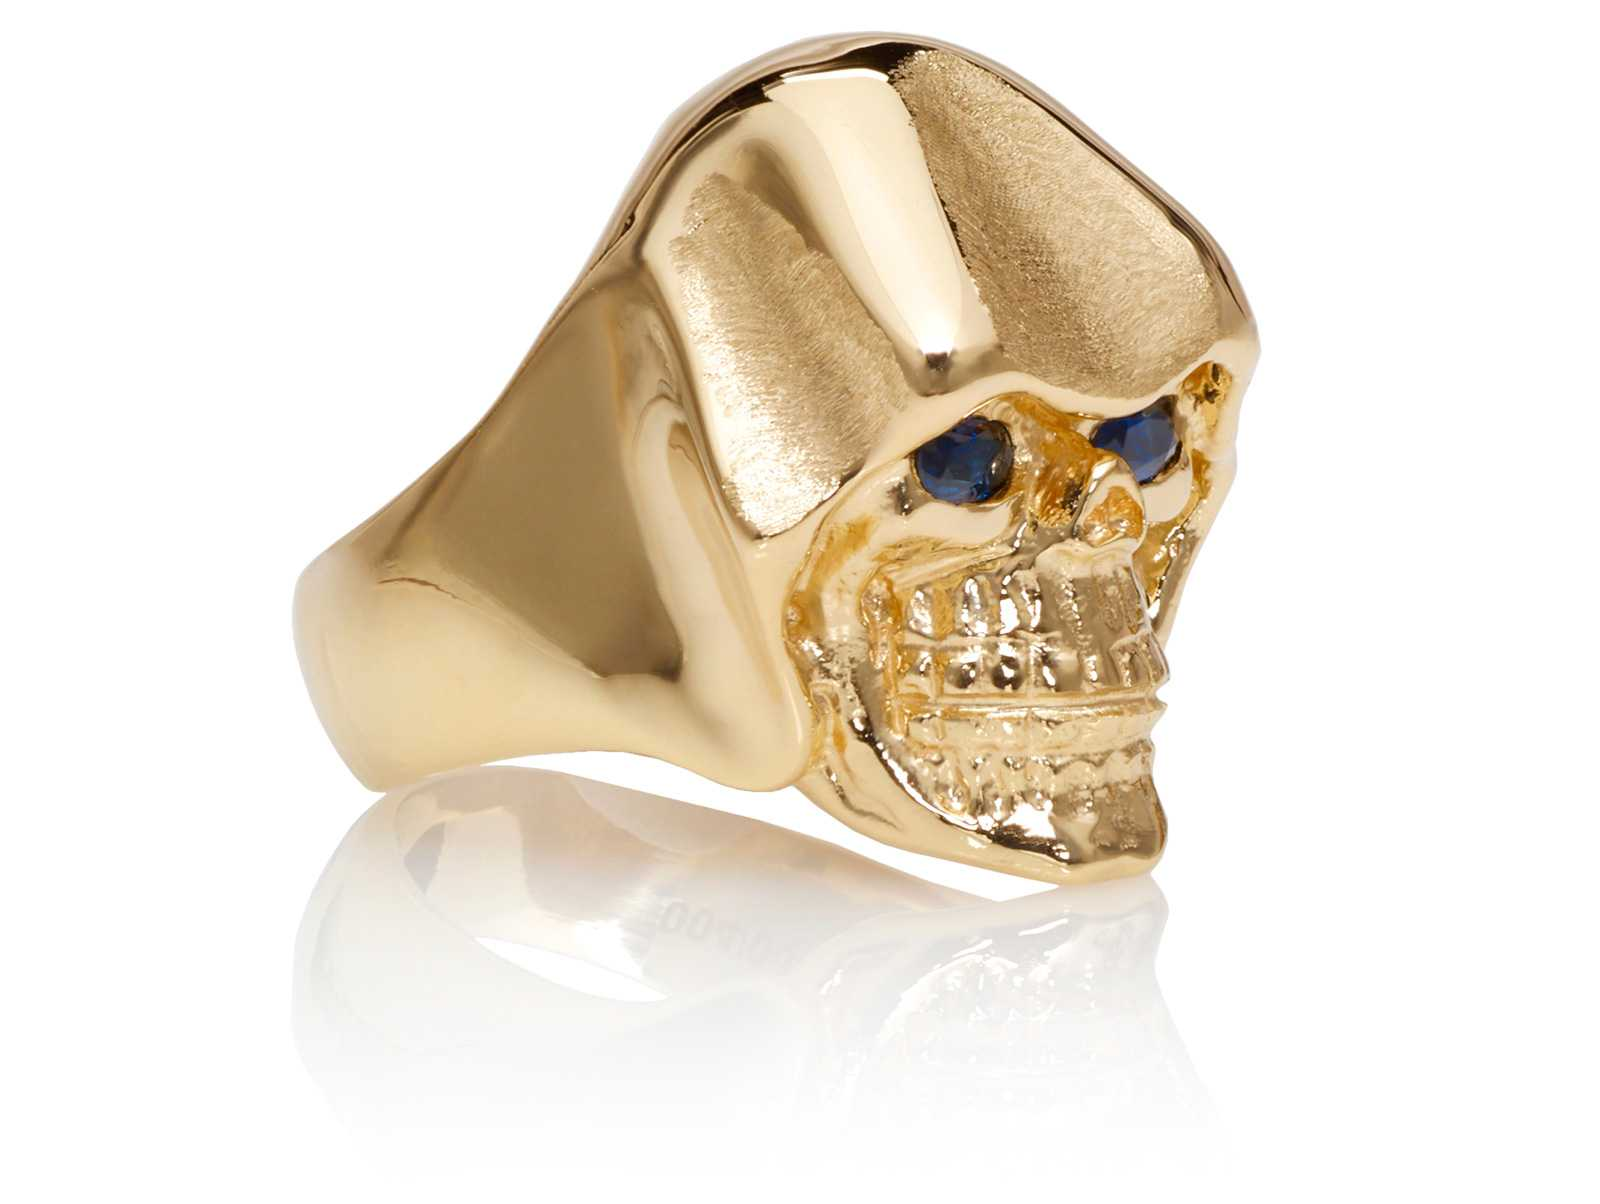 RG5010-B The Reaper Is In Skull Ring (Right Side Front View), Yellow with Rose Gold, with Blue Sapphires, designed by Steve Soffa